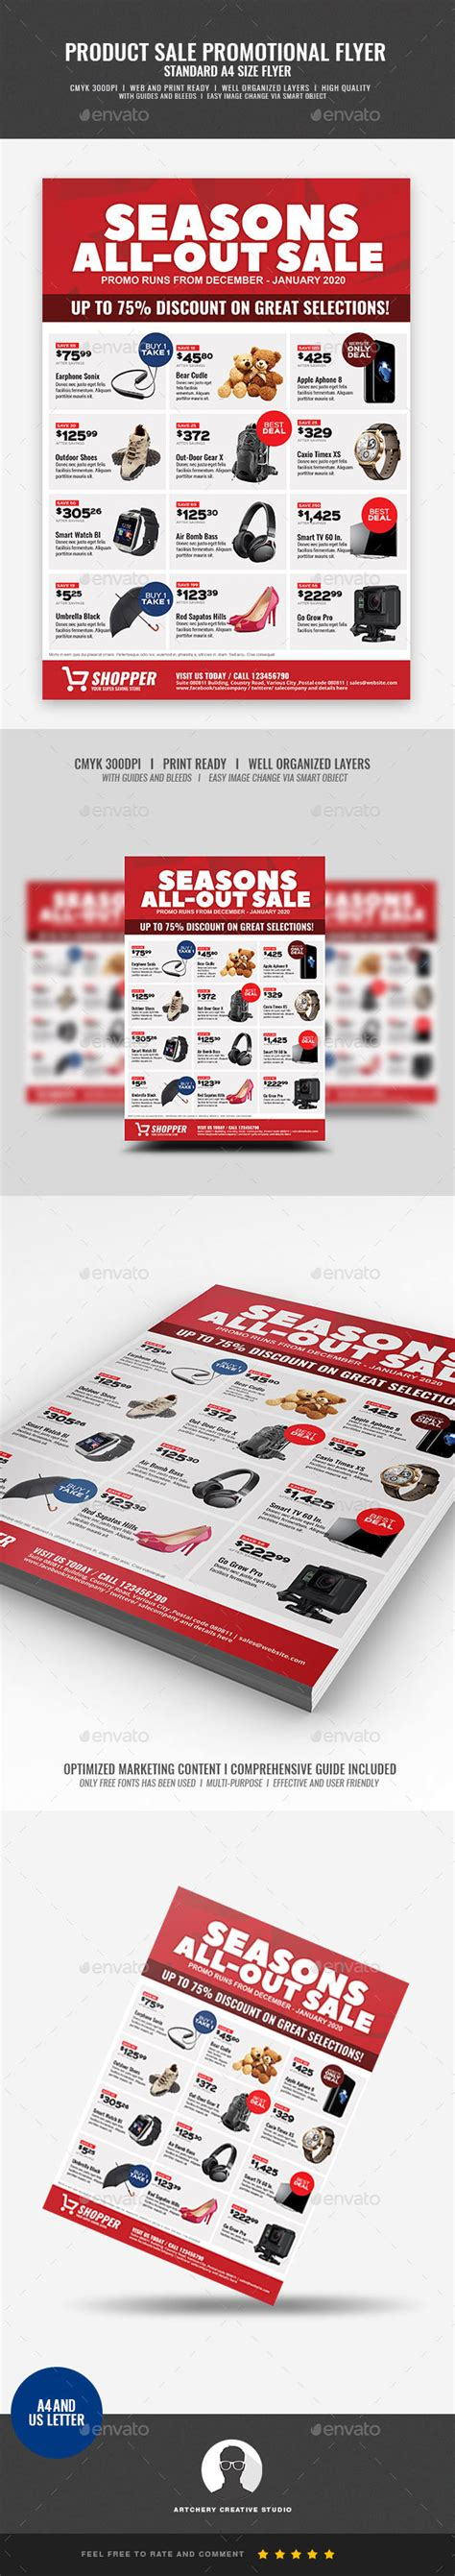 product layout sle product promotional sale flyer by artchery graphicriver